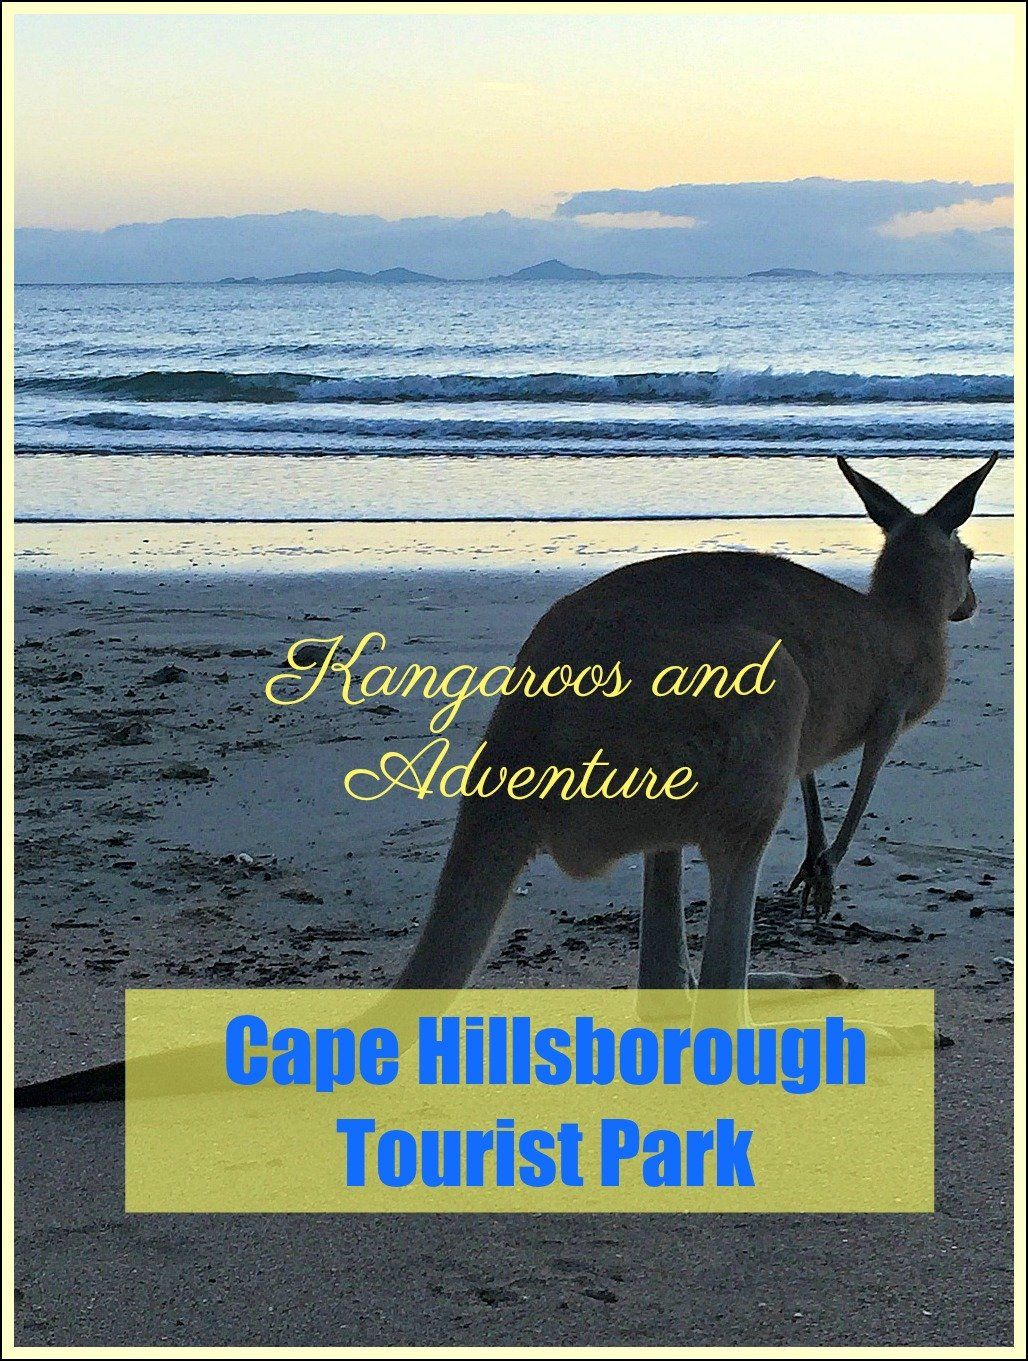 Kangaroos and Adventure at Cape Hillsborough Tourist Park